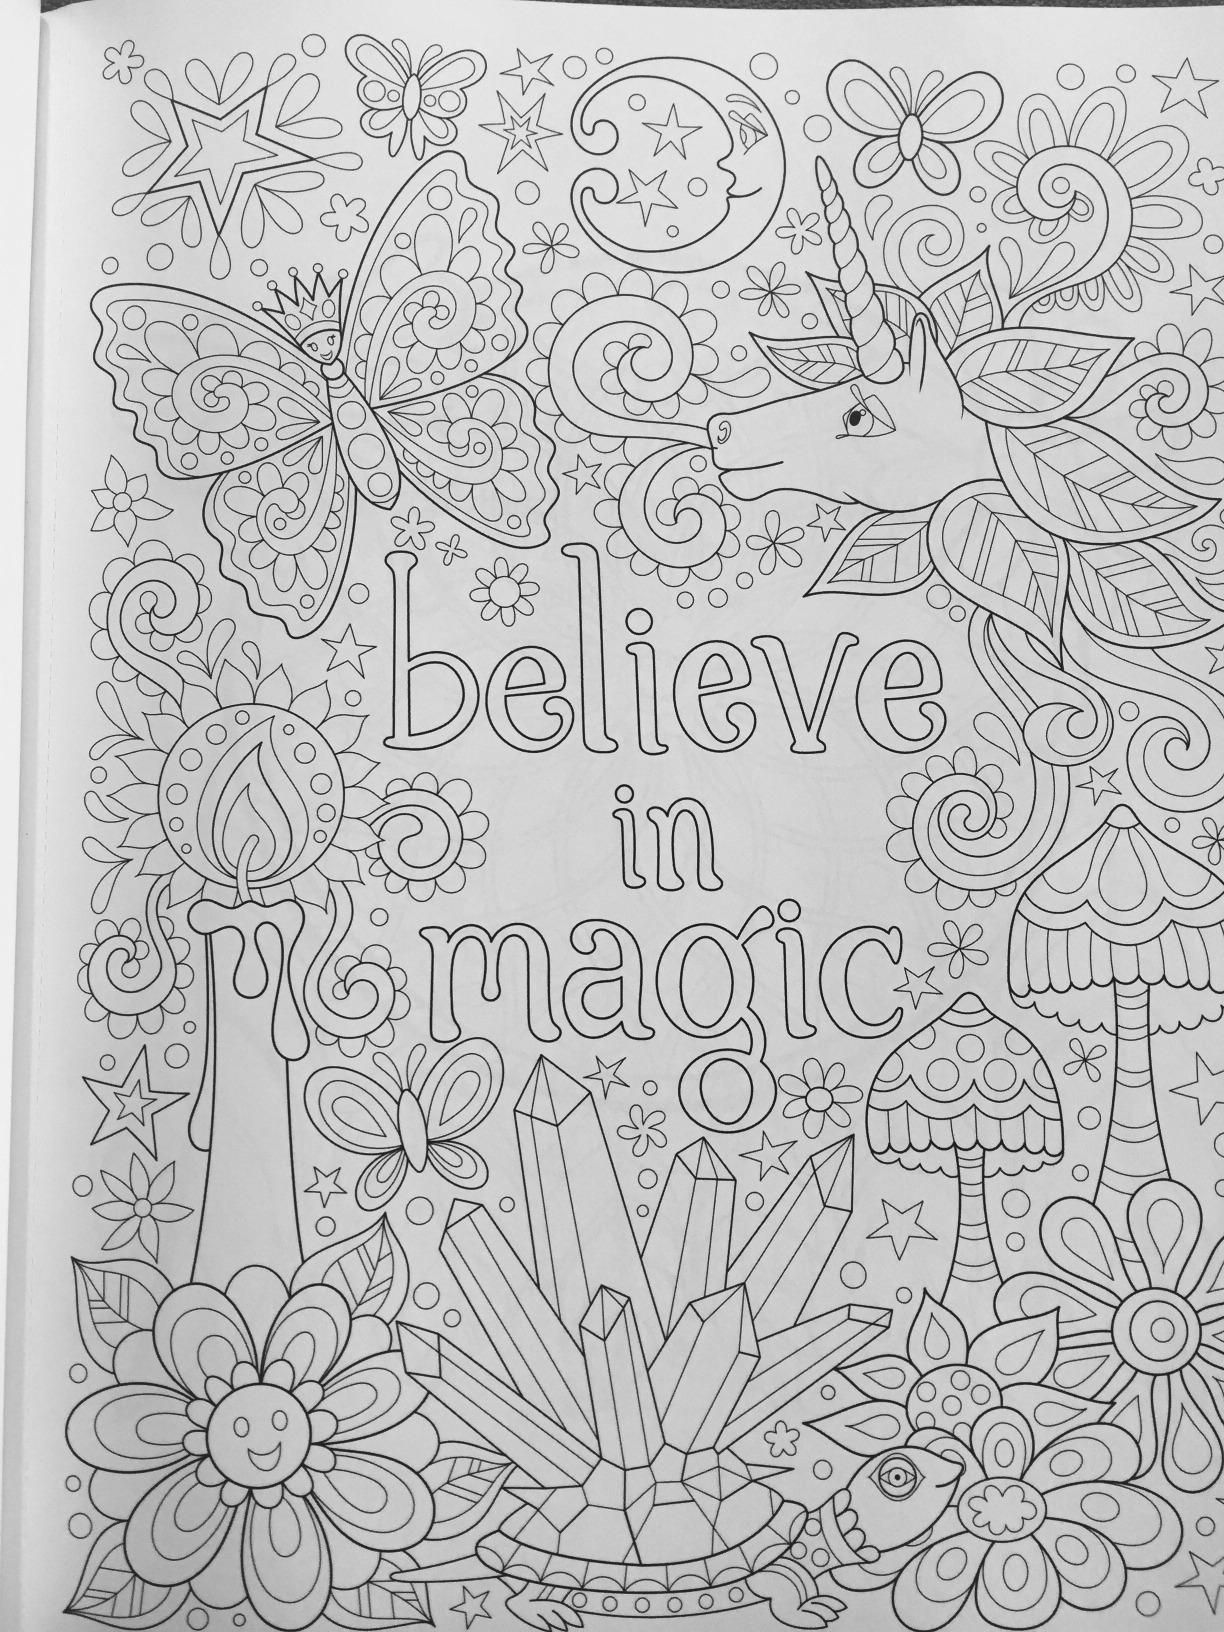 Free spirit coloring book by thaneeya mcardle coloring books by - Explore Lightbox Free Spirit And More